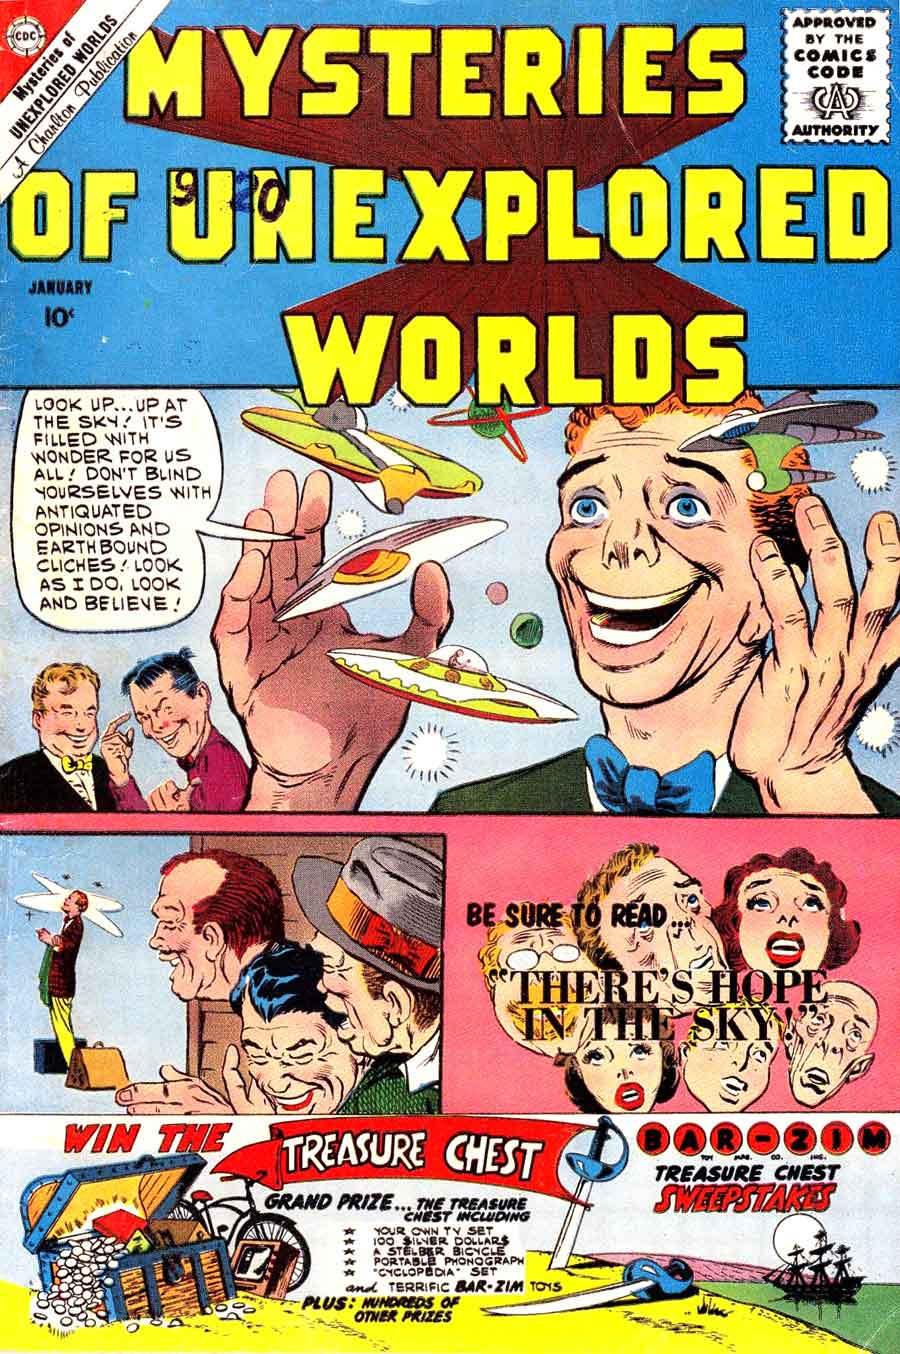 Mysteries of Unexplored Worlds v1 #22 charlton comic book cover art by Steve Ditko